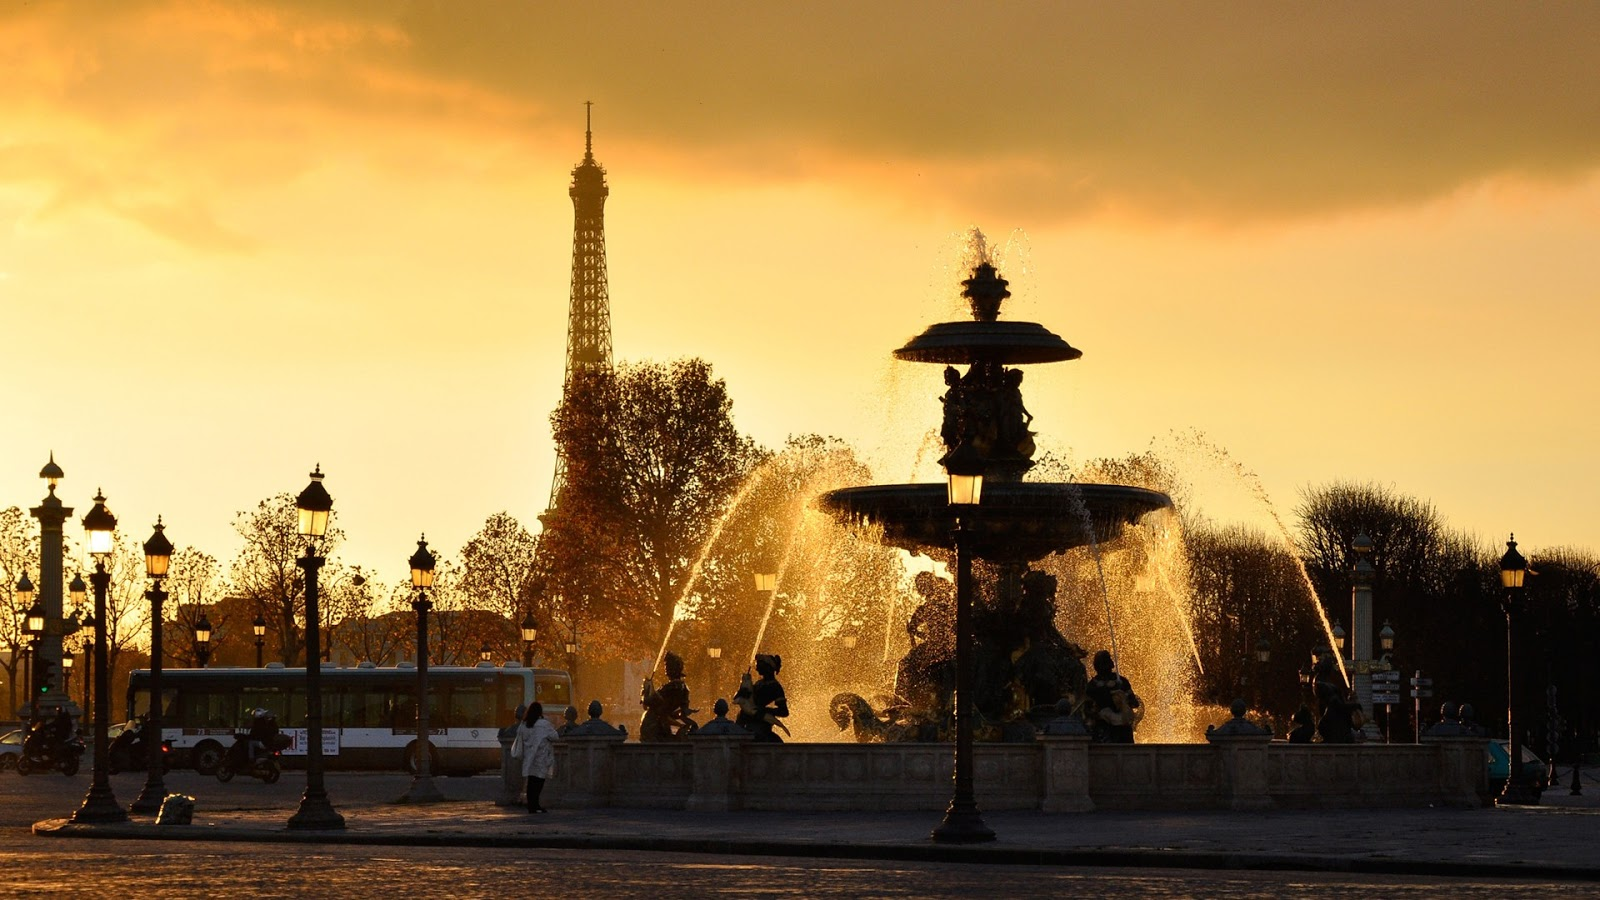 Paris In Afternoon Wallpaper